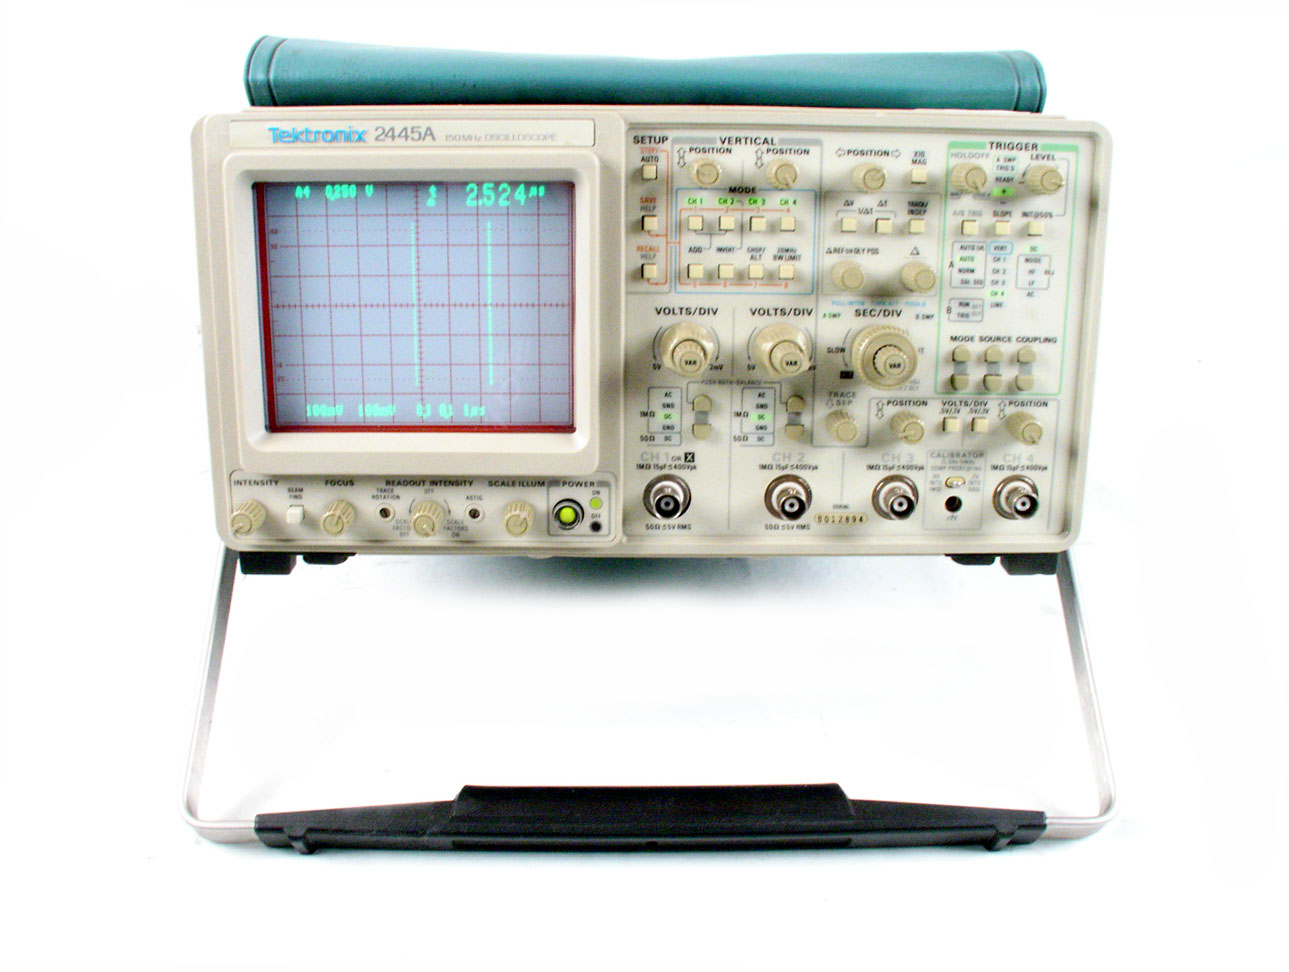 Tektronix 2445A for sale